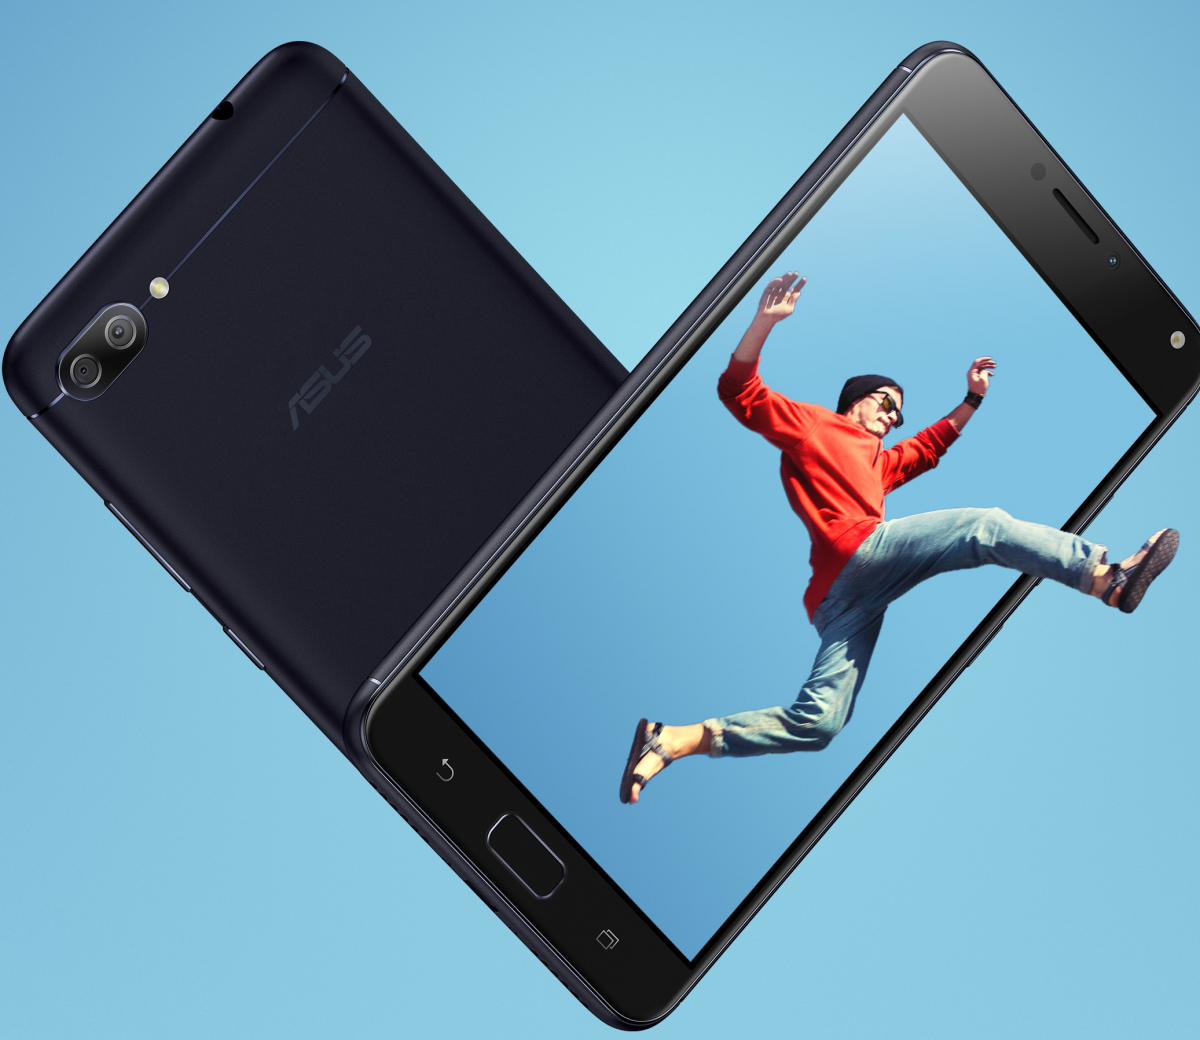 asus launches the zenfone 4 max in russia with a 5 000mah battery